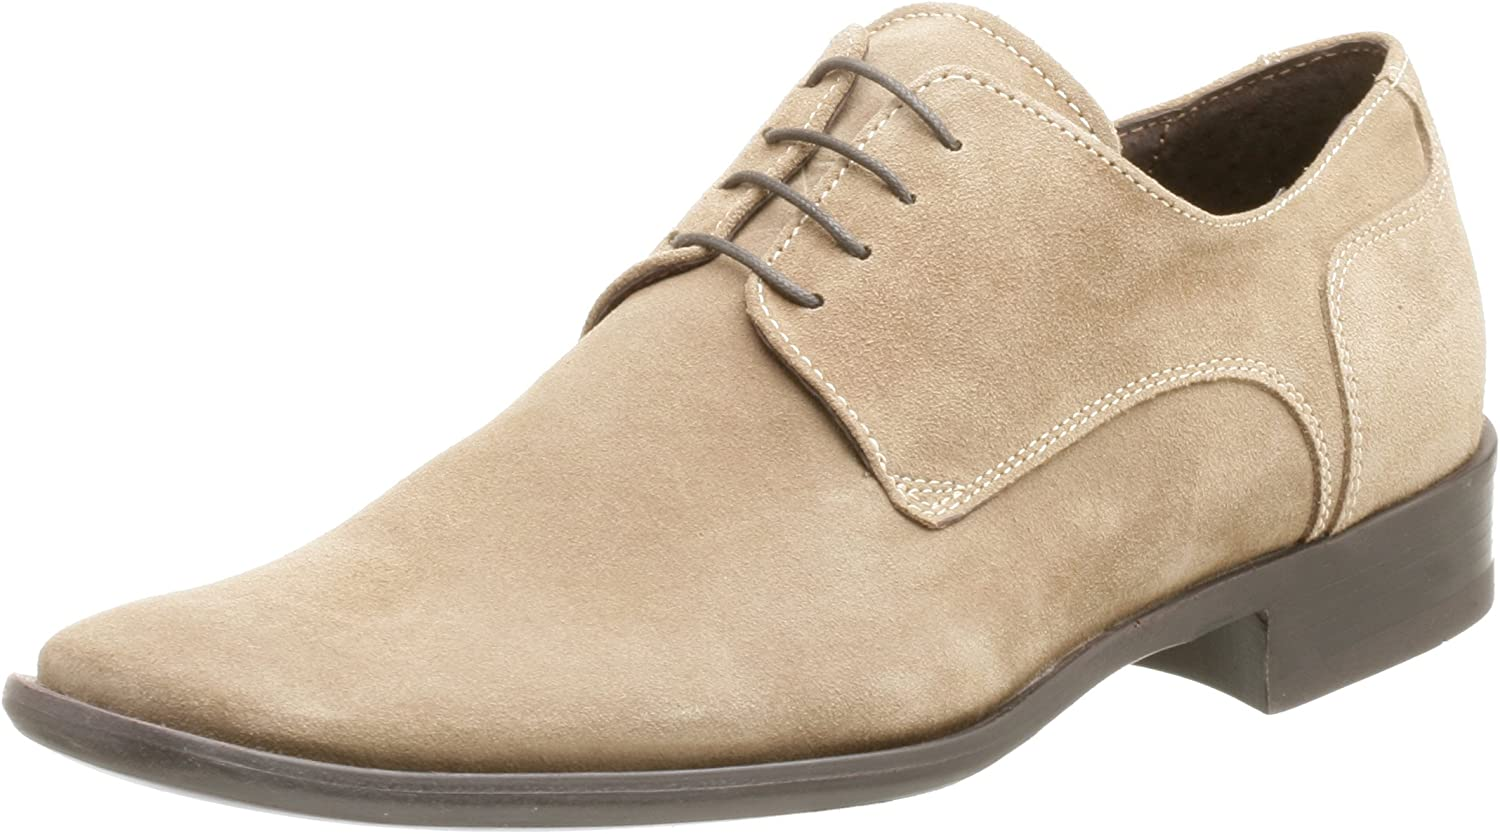 Kenneth Cole REACTION Men's Cause Way Suede Plain Toe Oxford